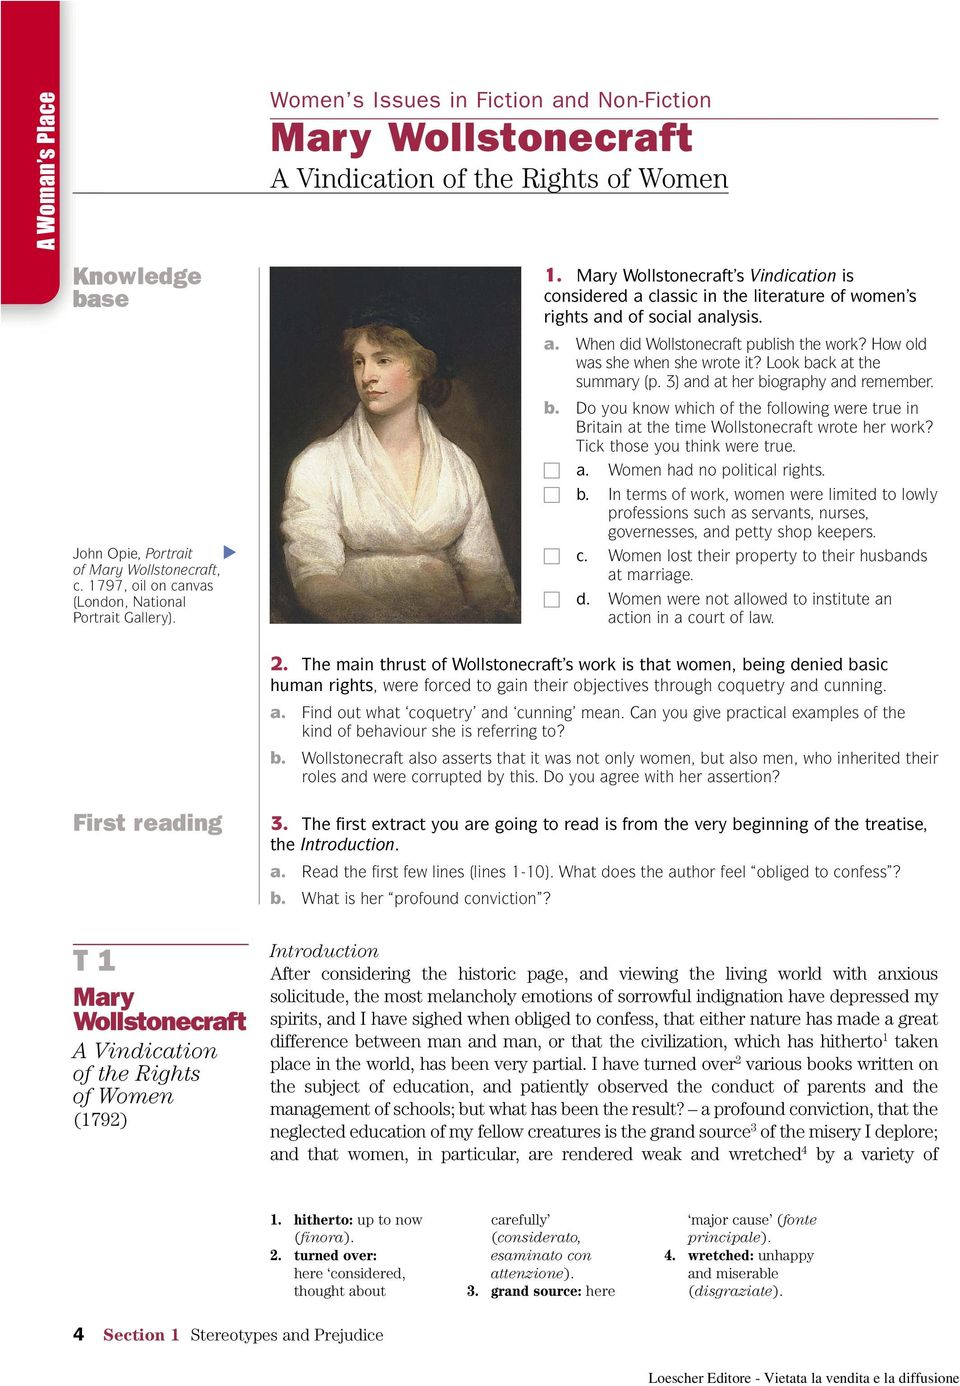 an analysis of the neglected education in a vindication of the rights of women by mary wollstonecraf Dive deep into mary wollstonecraft's a vindication of the rights of woman with extended analysis, commentary, and discussion.